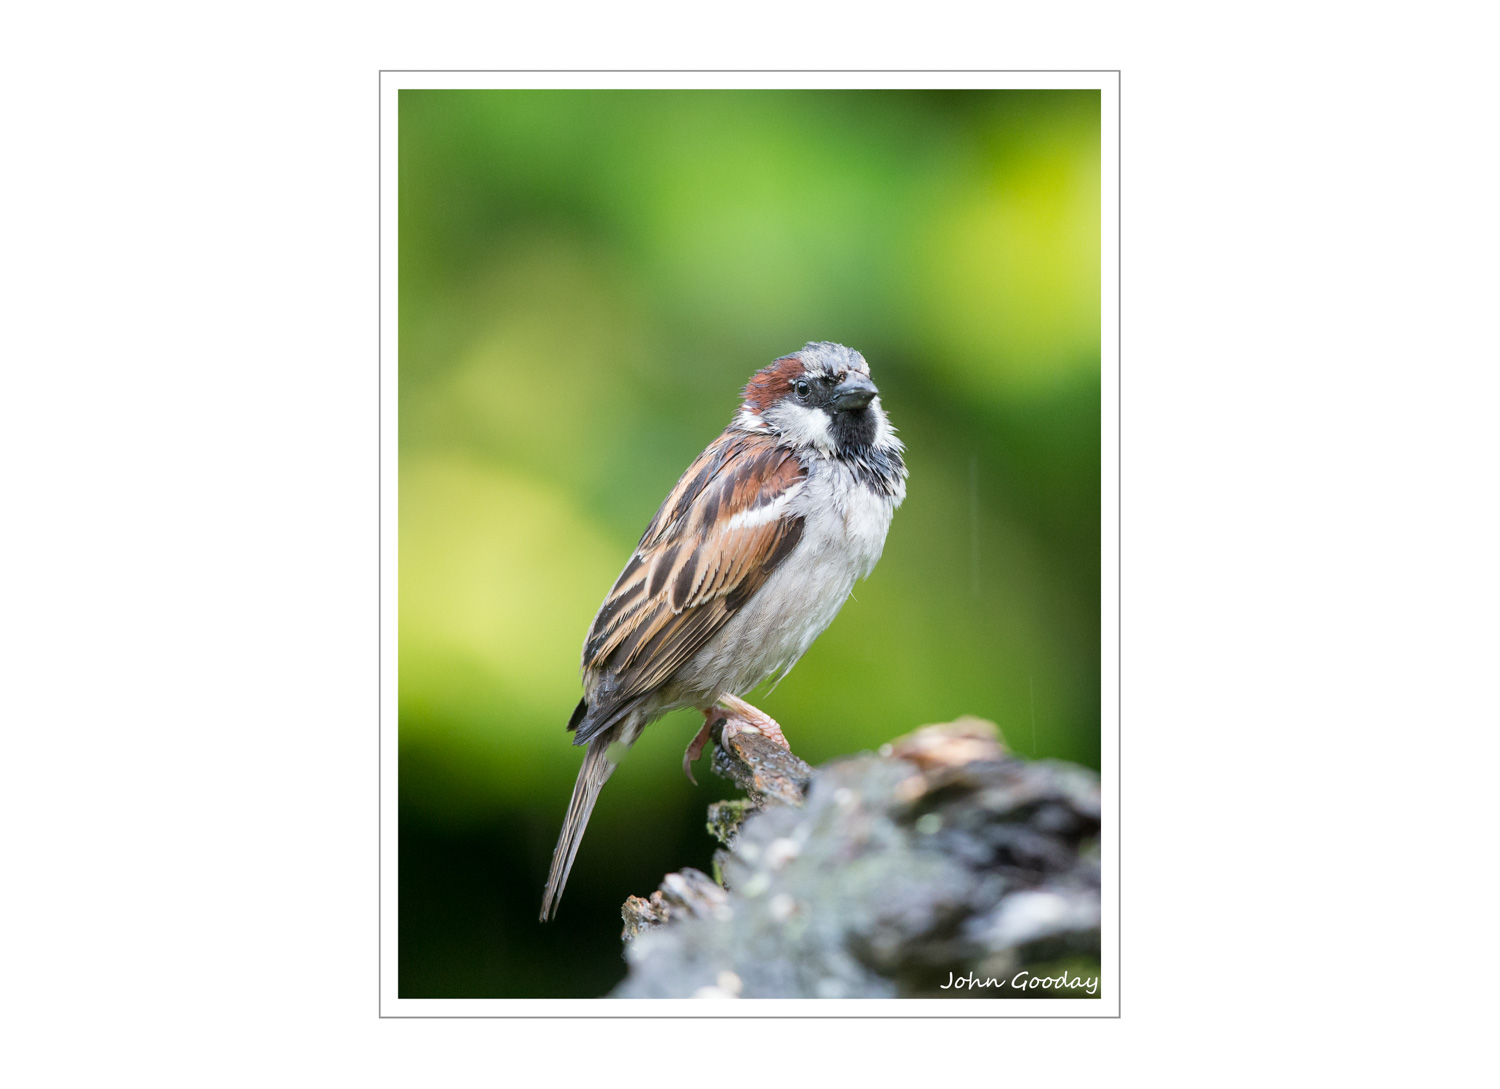 (Image: Rain-soaked House Sparrow photographed on one of the large branches placed along the side of the tray. Canon EOS 1DX, EF500mm f/4L IS II + 12mm extension tuve, 1/200 sec @ f/5, ISO 4000, tripod, hide)